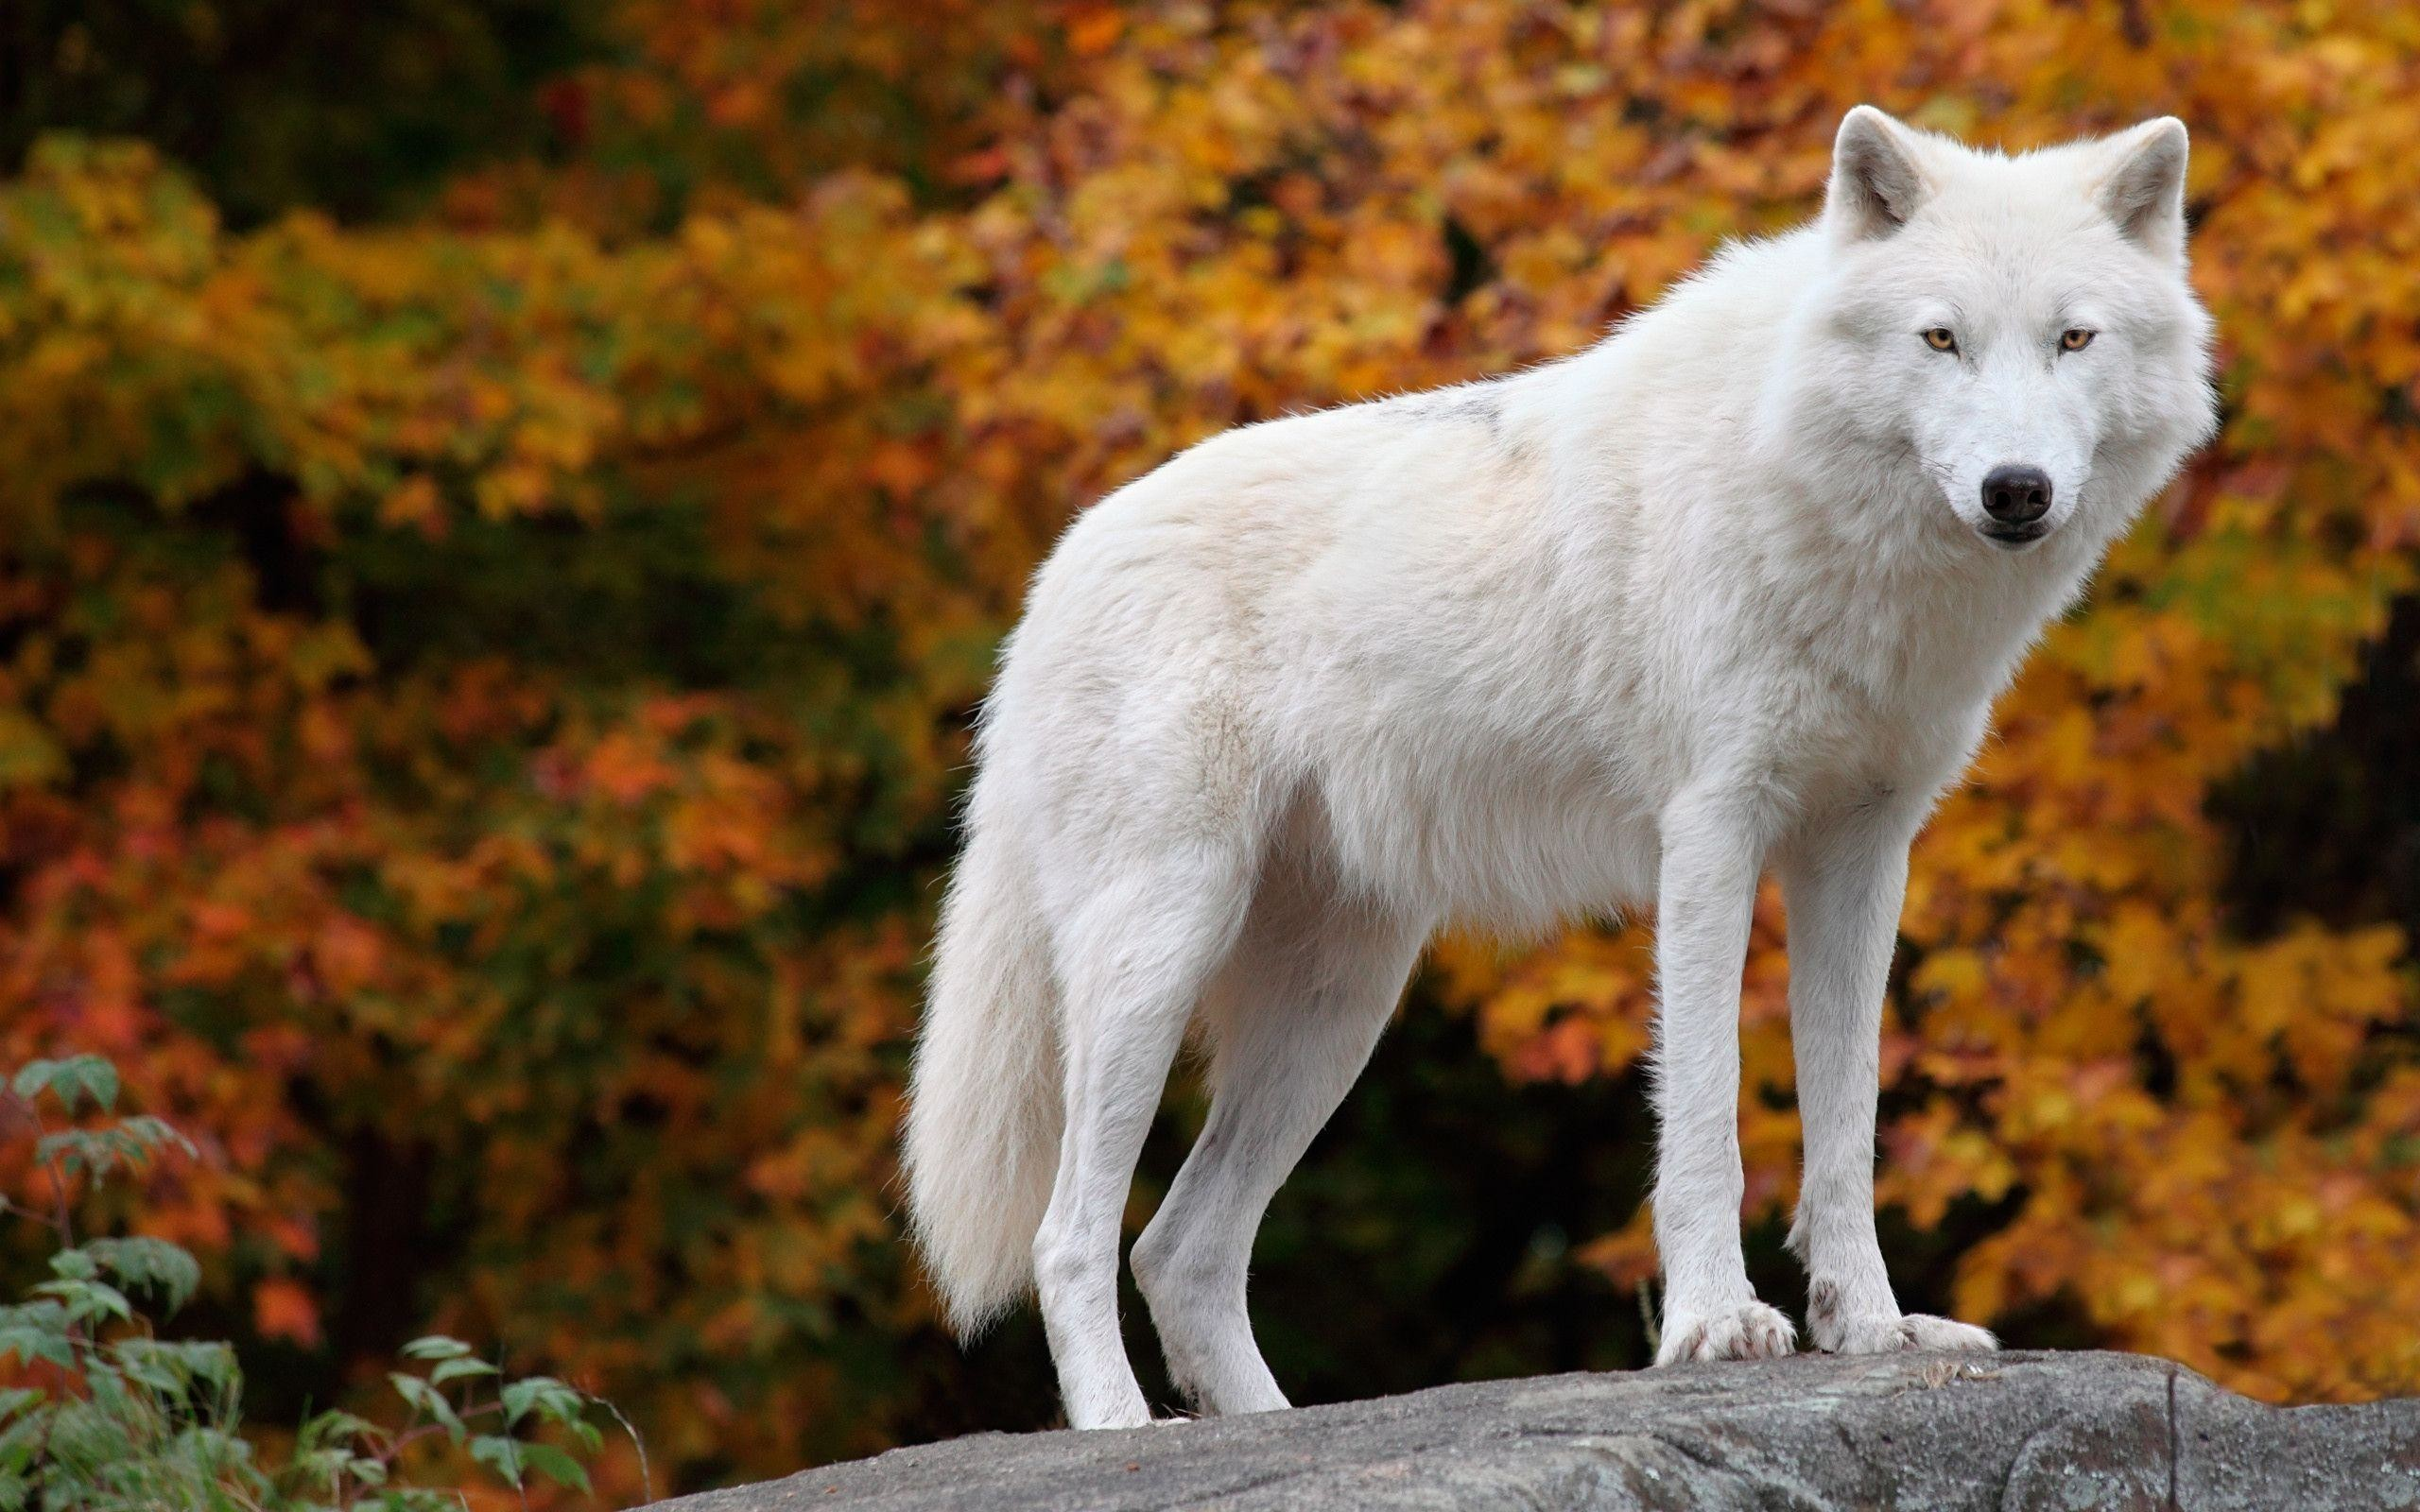 2560x1600 arctic-wolf-images-hd-wallpapers-wallpaper-greenland-husky-